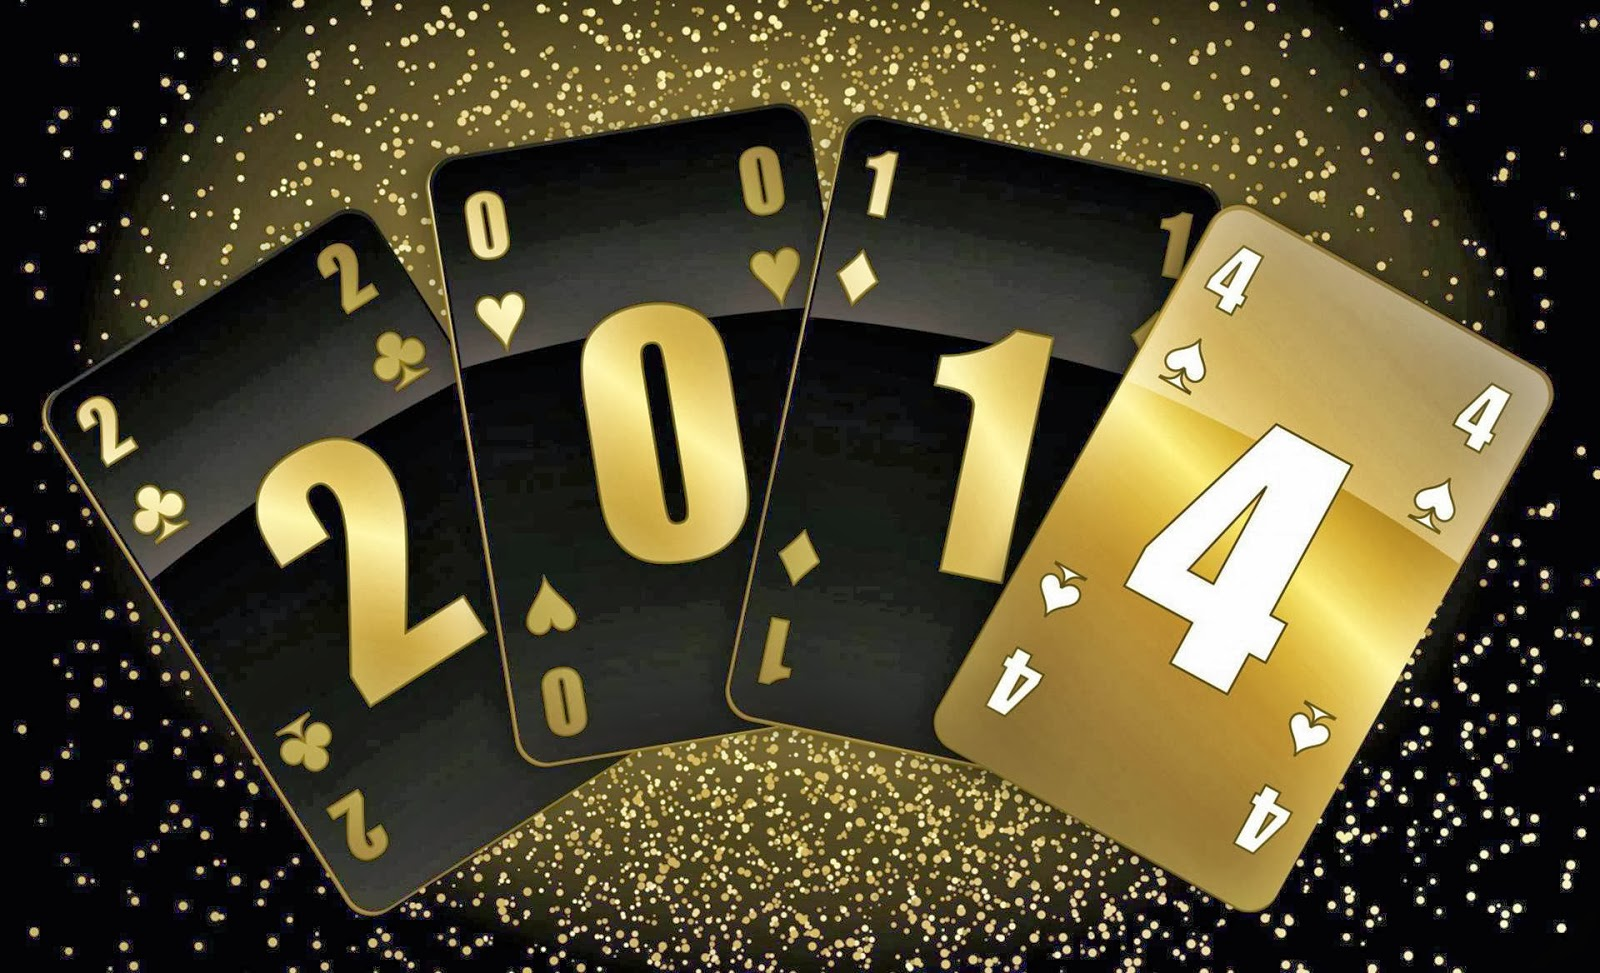 Happy New Year 2014 Greeting Cards Images Wallpapers Pictures HD.6 Greeting For New Year In Hindi 2014